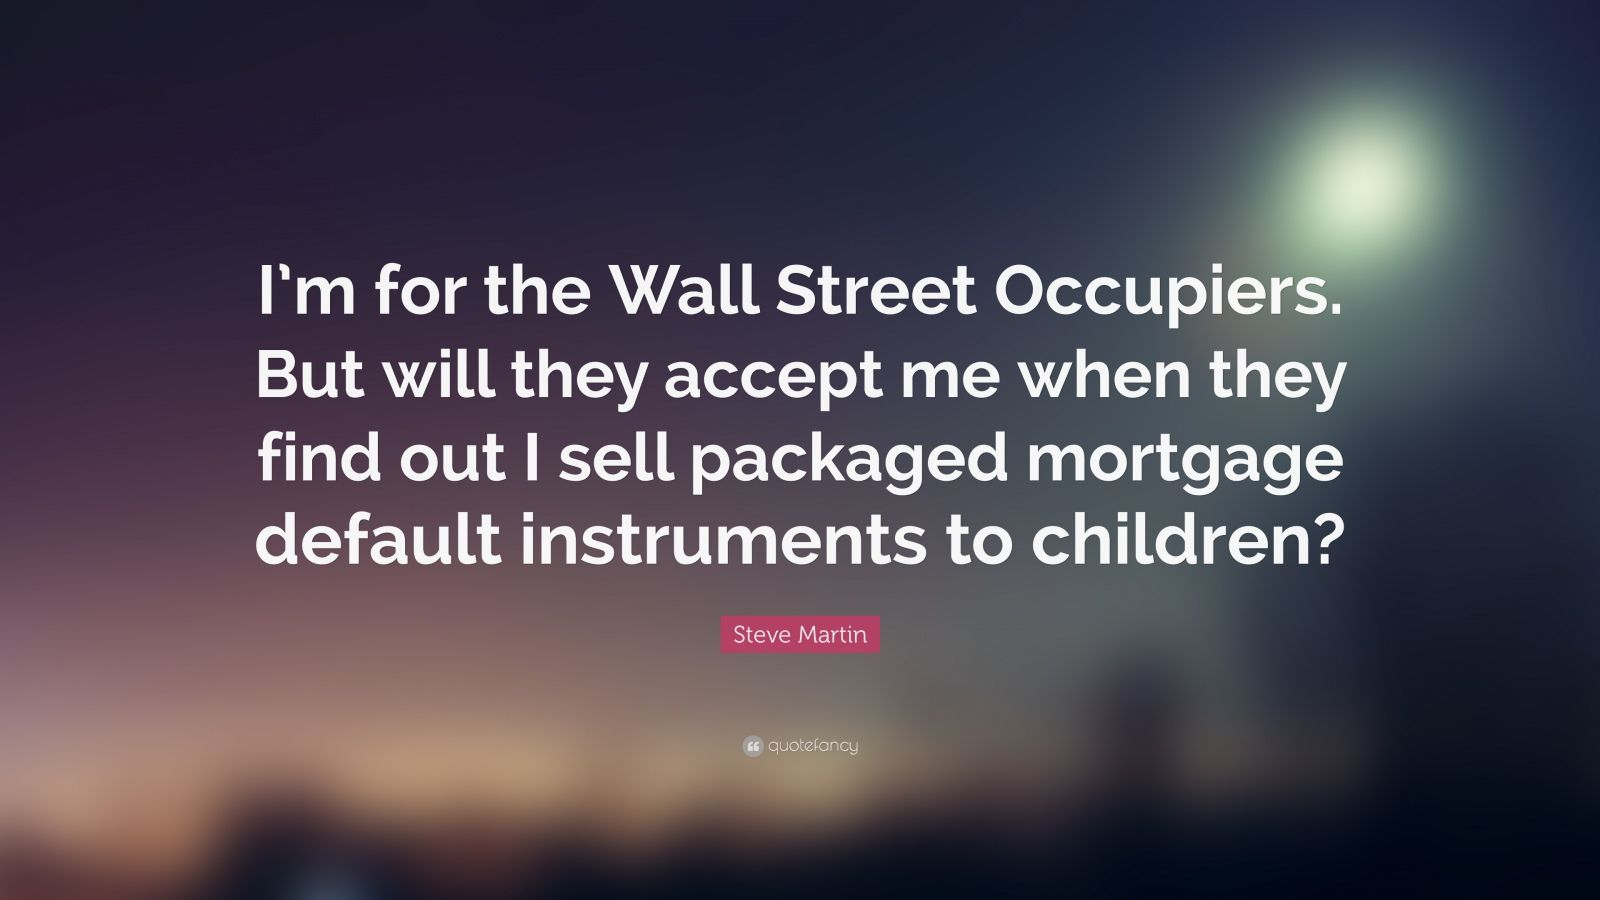 """Steve Martin Quote: """"I'm for the Wall Street Occupiers. But will they accept me when they find out I sell packaged mortgage default instruments to children?"""""""